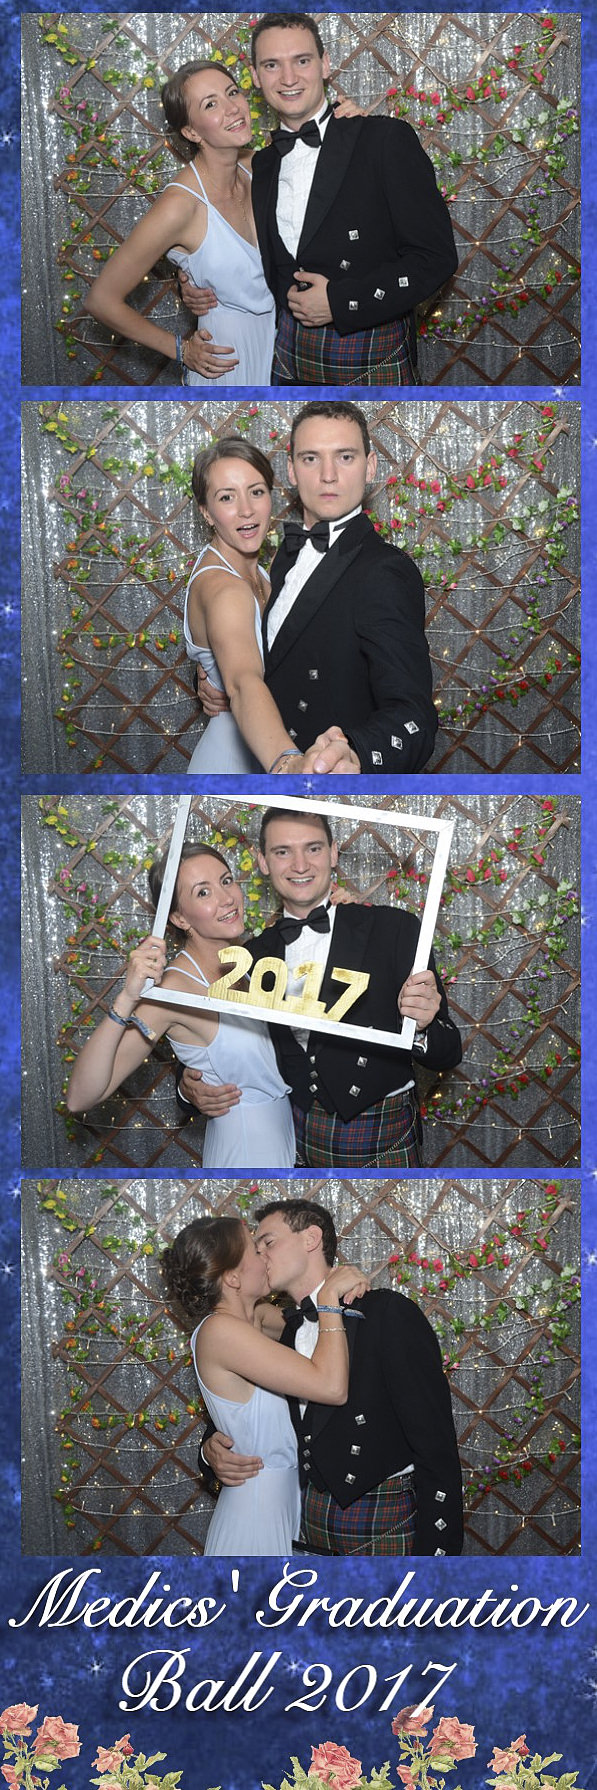 Medics Graduation Ball 2017 Medics Ball 2017 - TheSelfieLab.co.ukDS221100.jpg